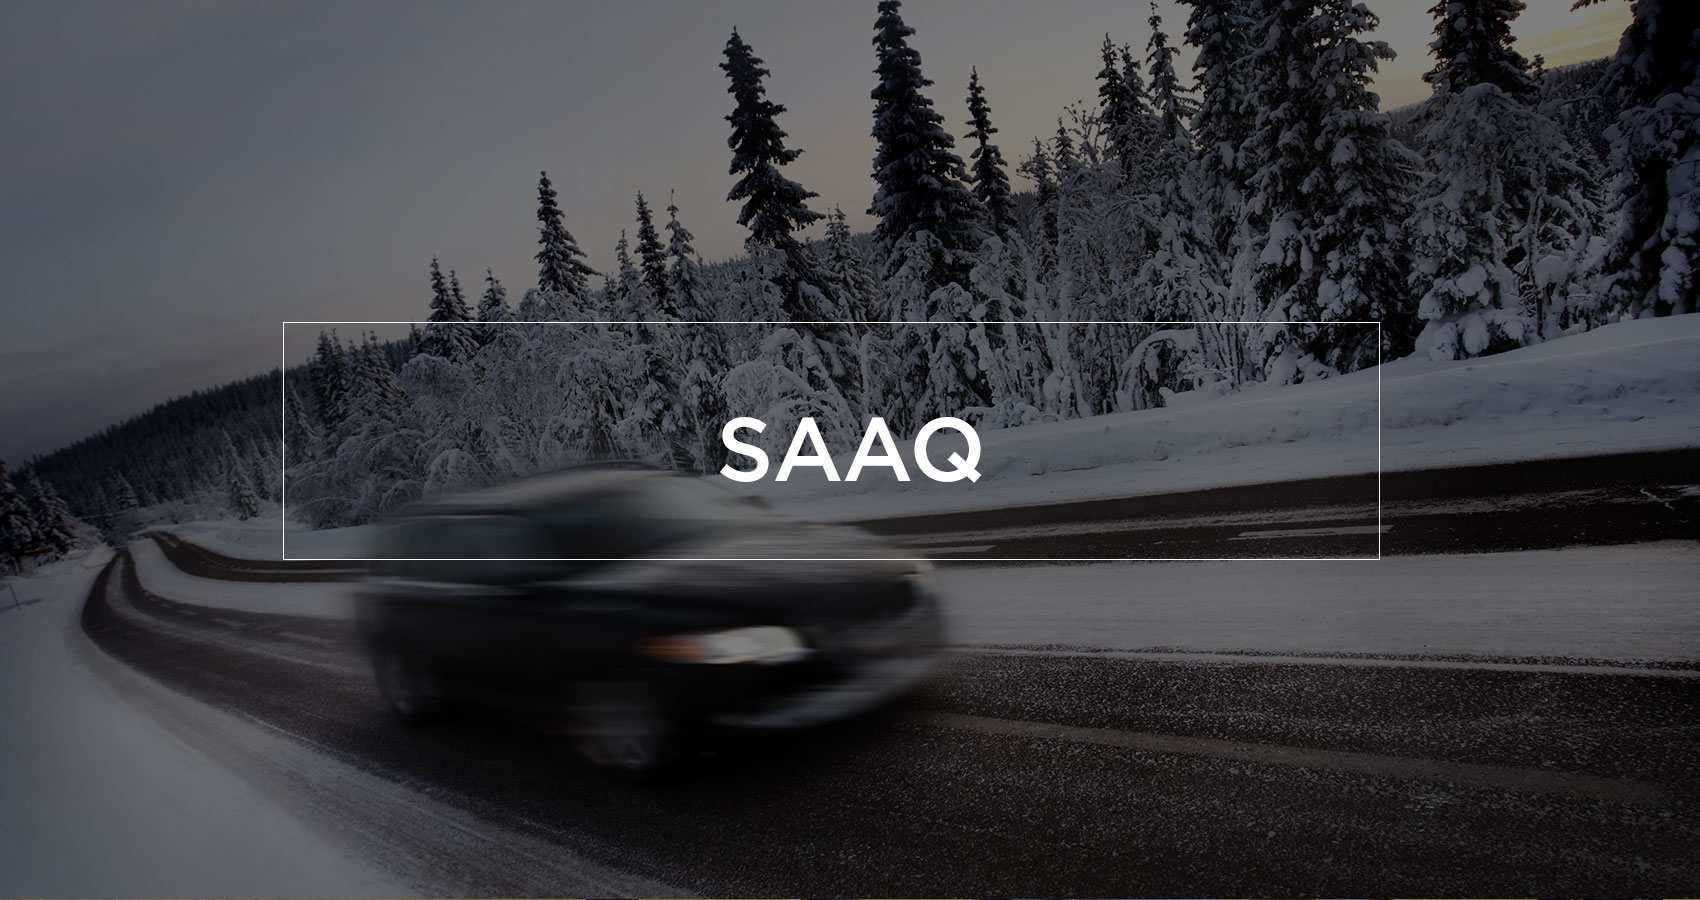 saaq_route-accident-dos-physiotherapie-daigneault-saint-hyacinthe